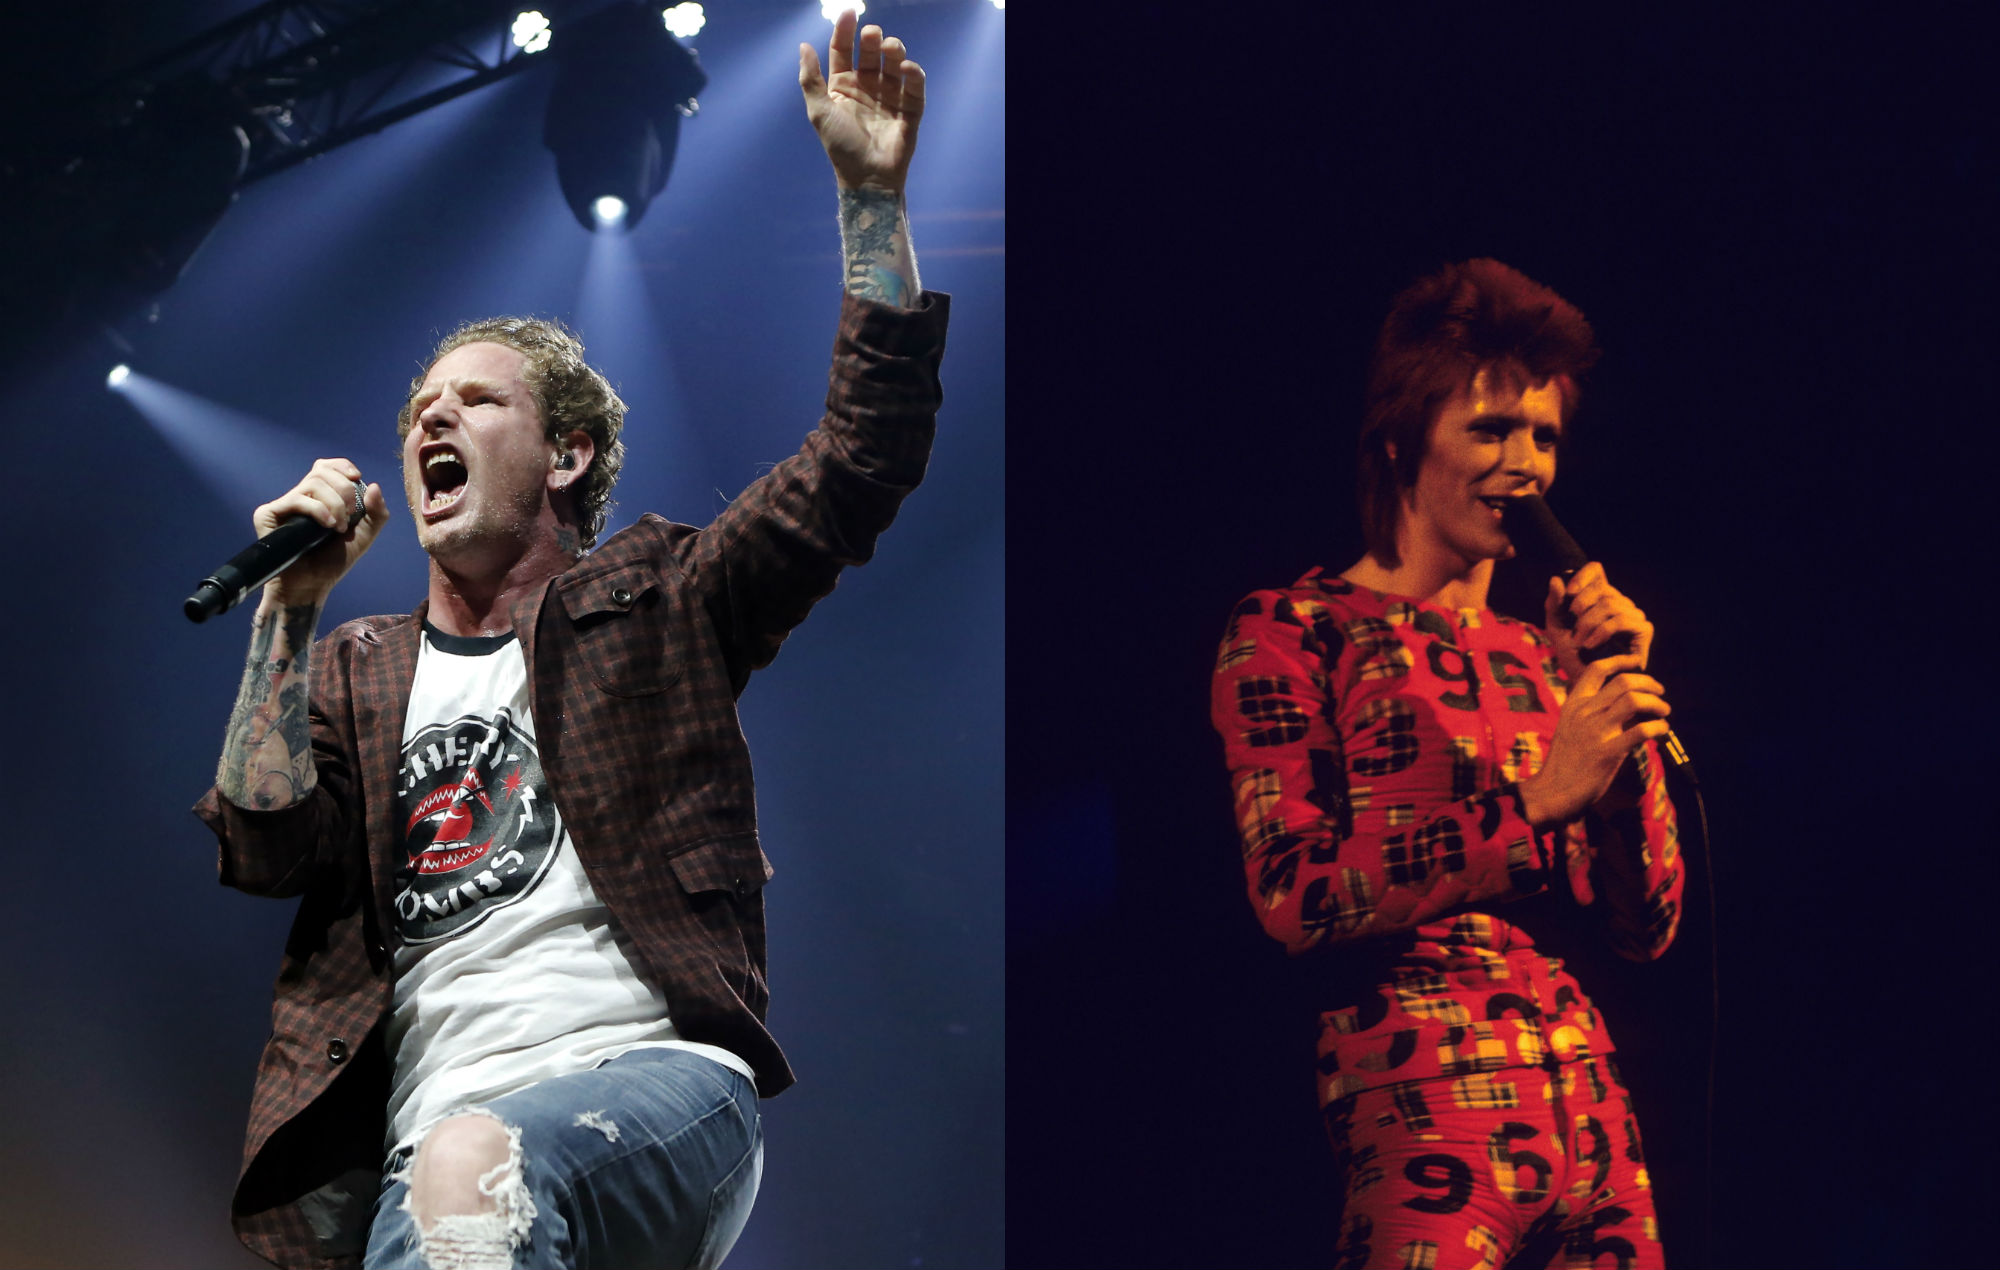 Watch Slipknot S Corey Taylor Cover David Bowie S Moonage